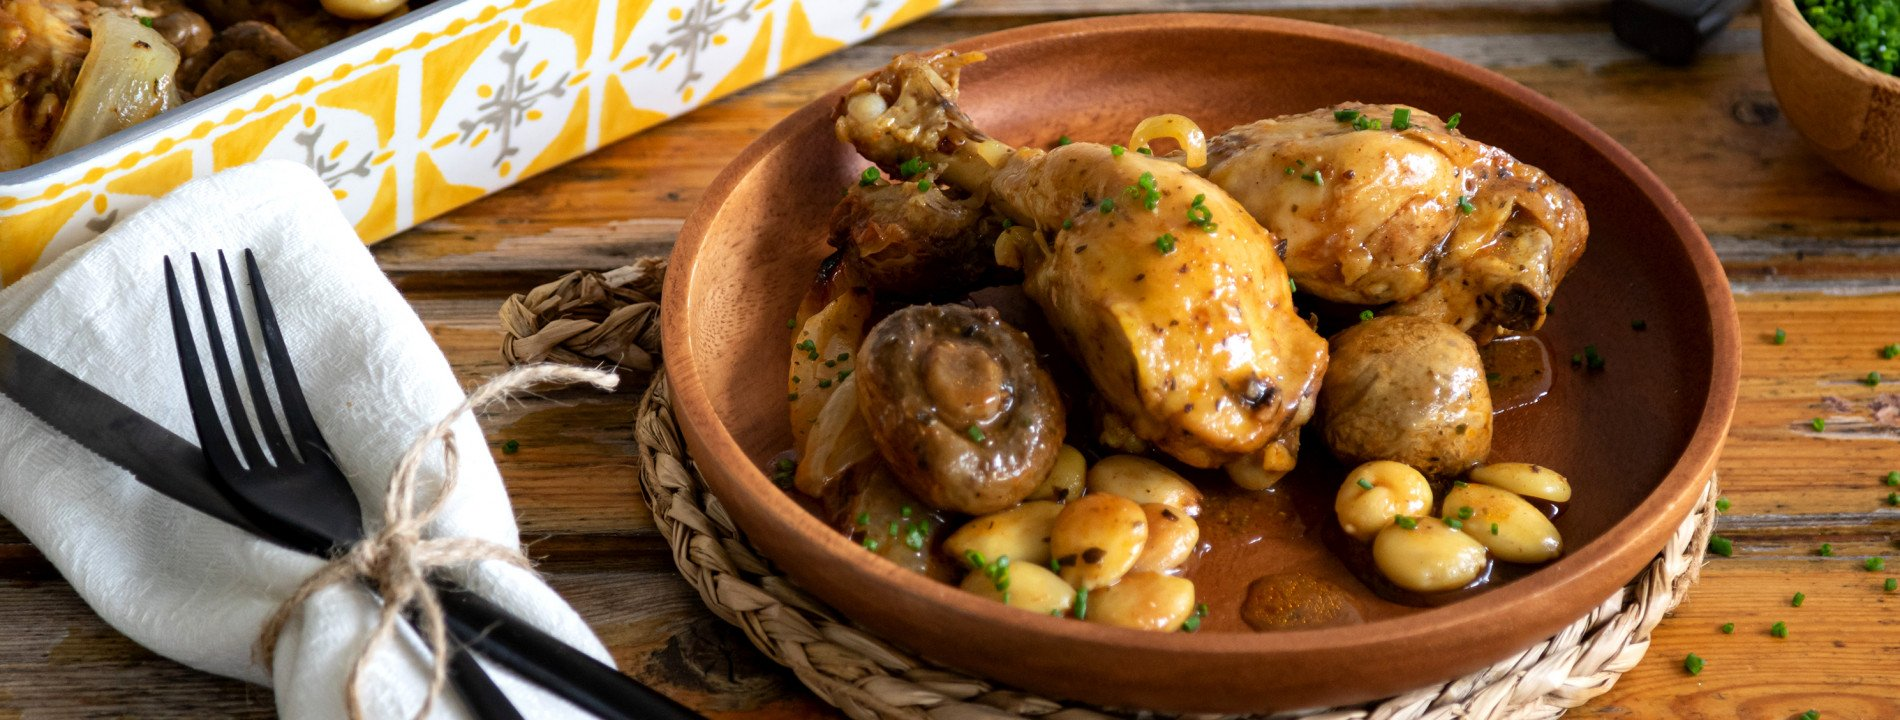 Chicken Legs with Mushrooms and Almonds